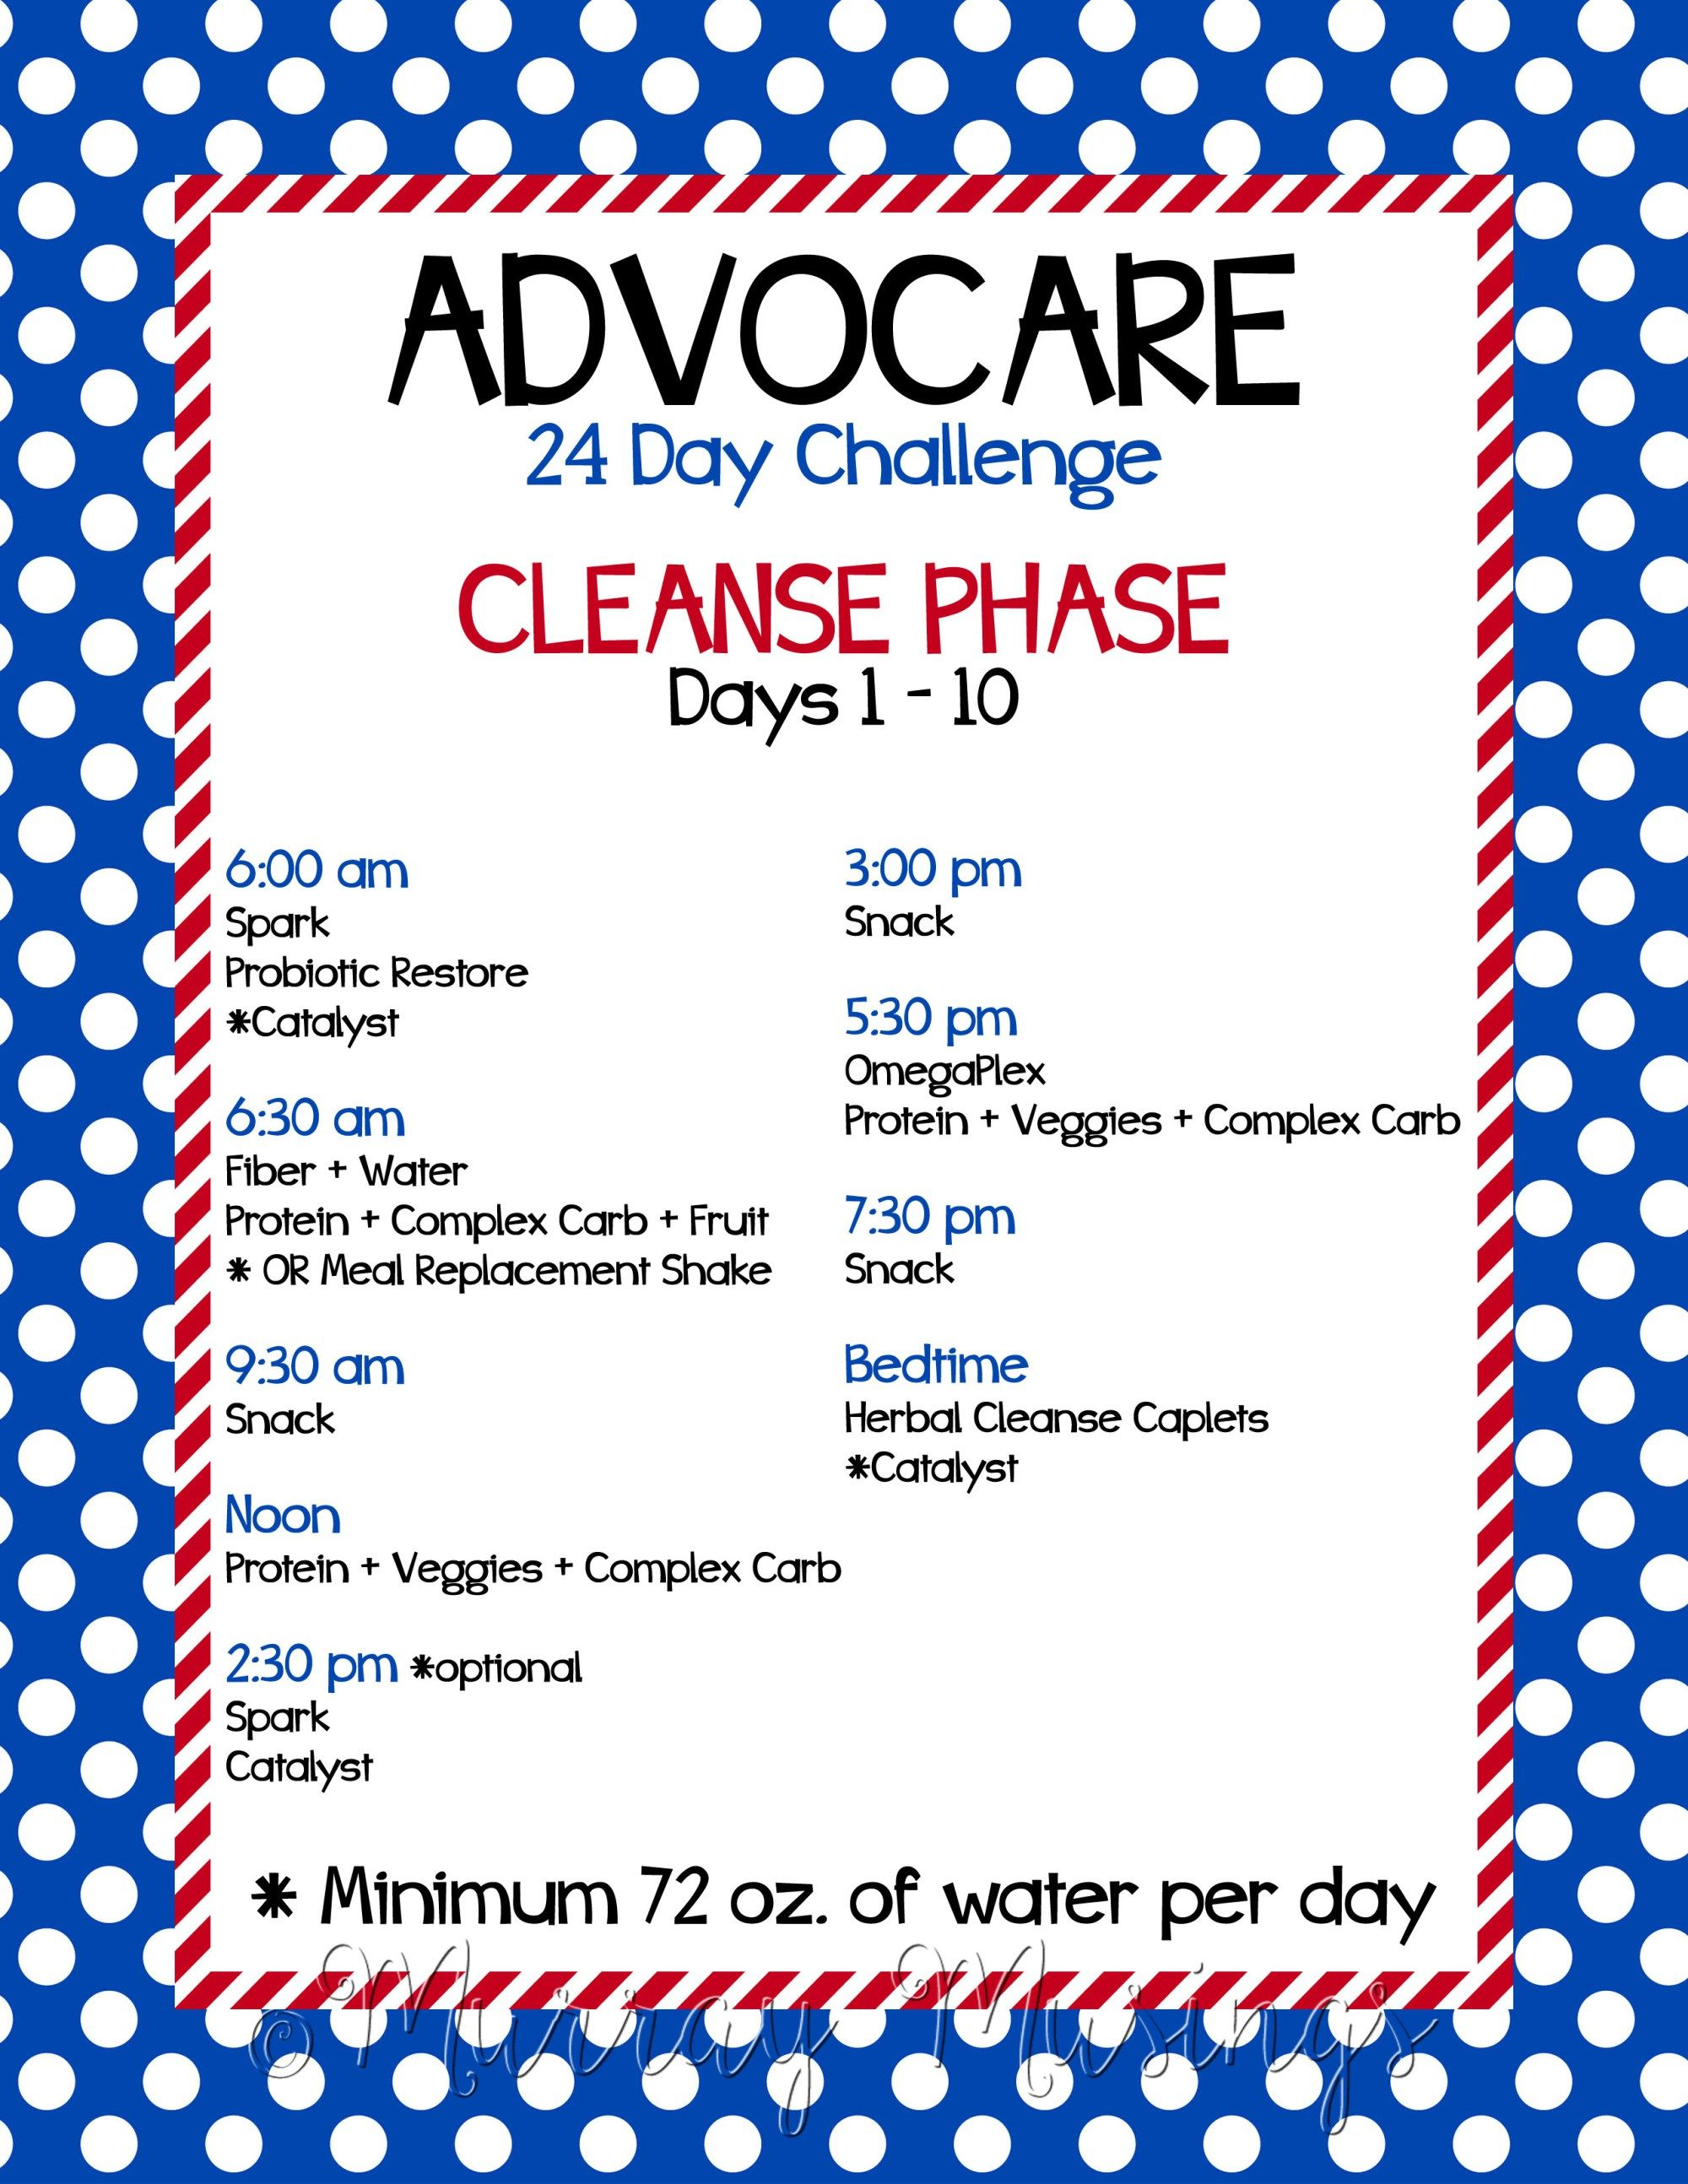 diet start cleanse instructions